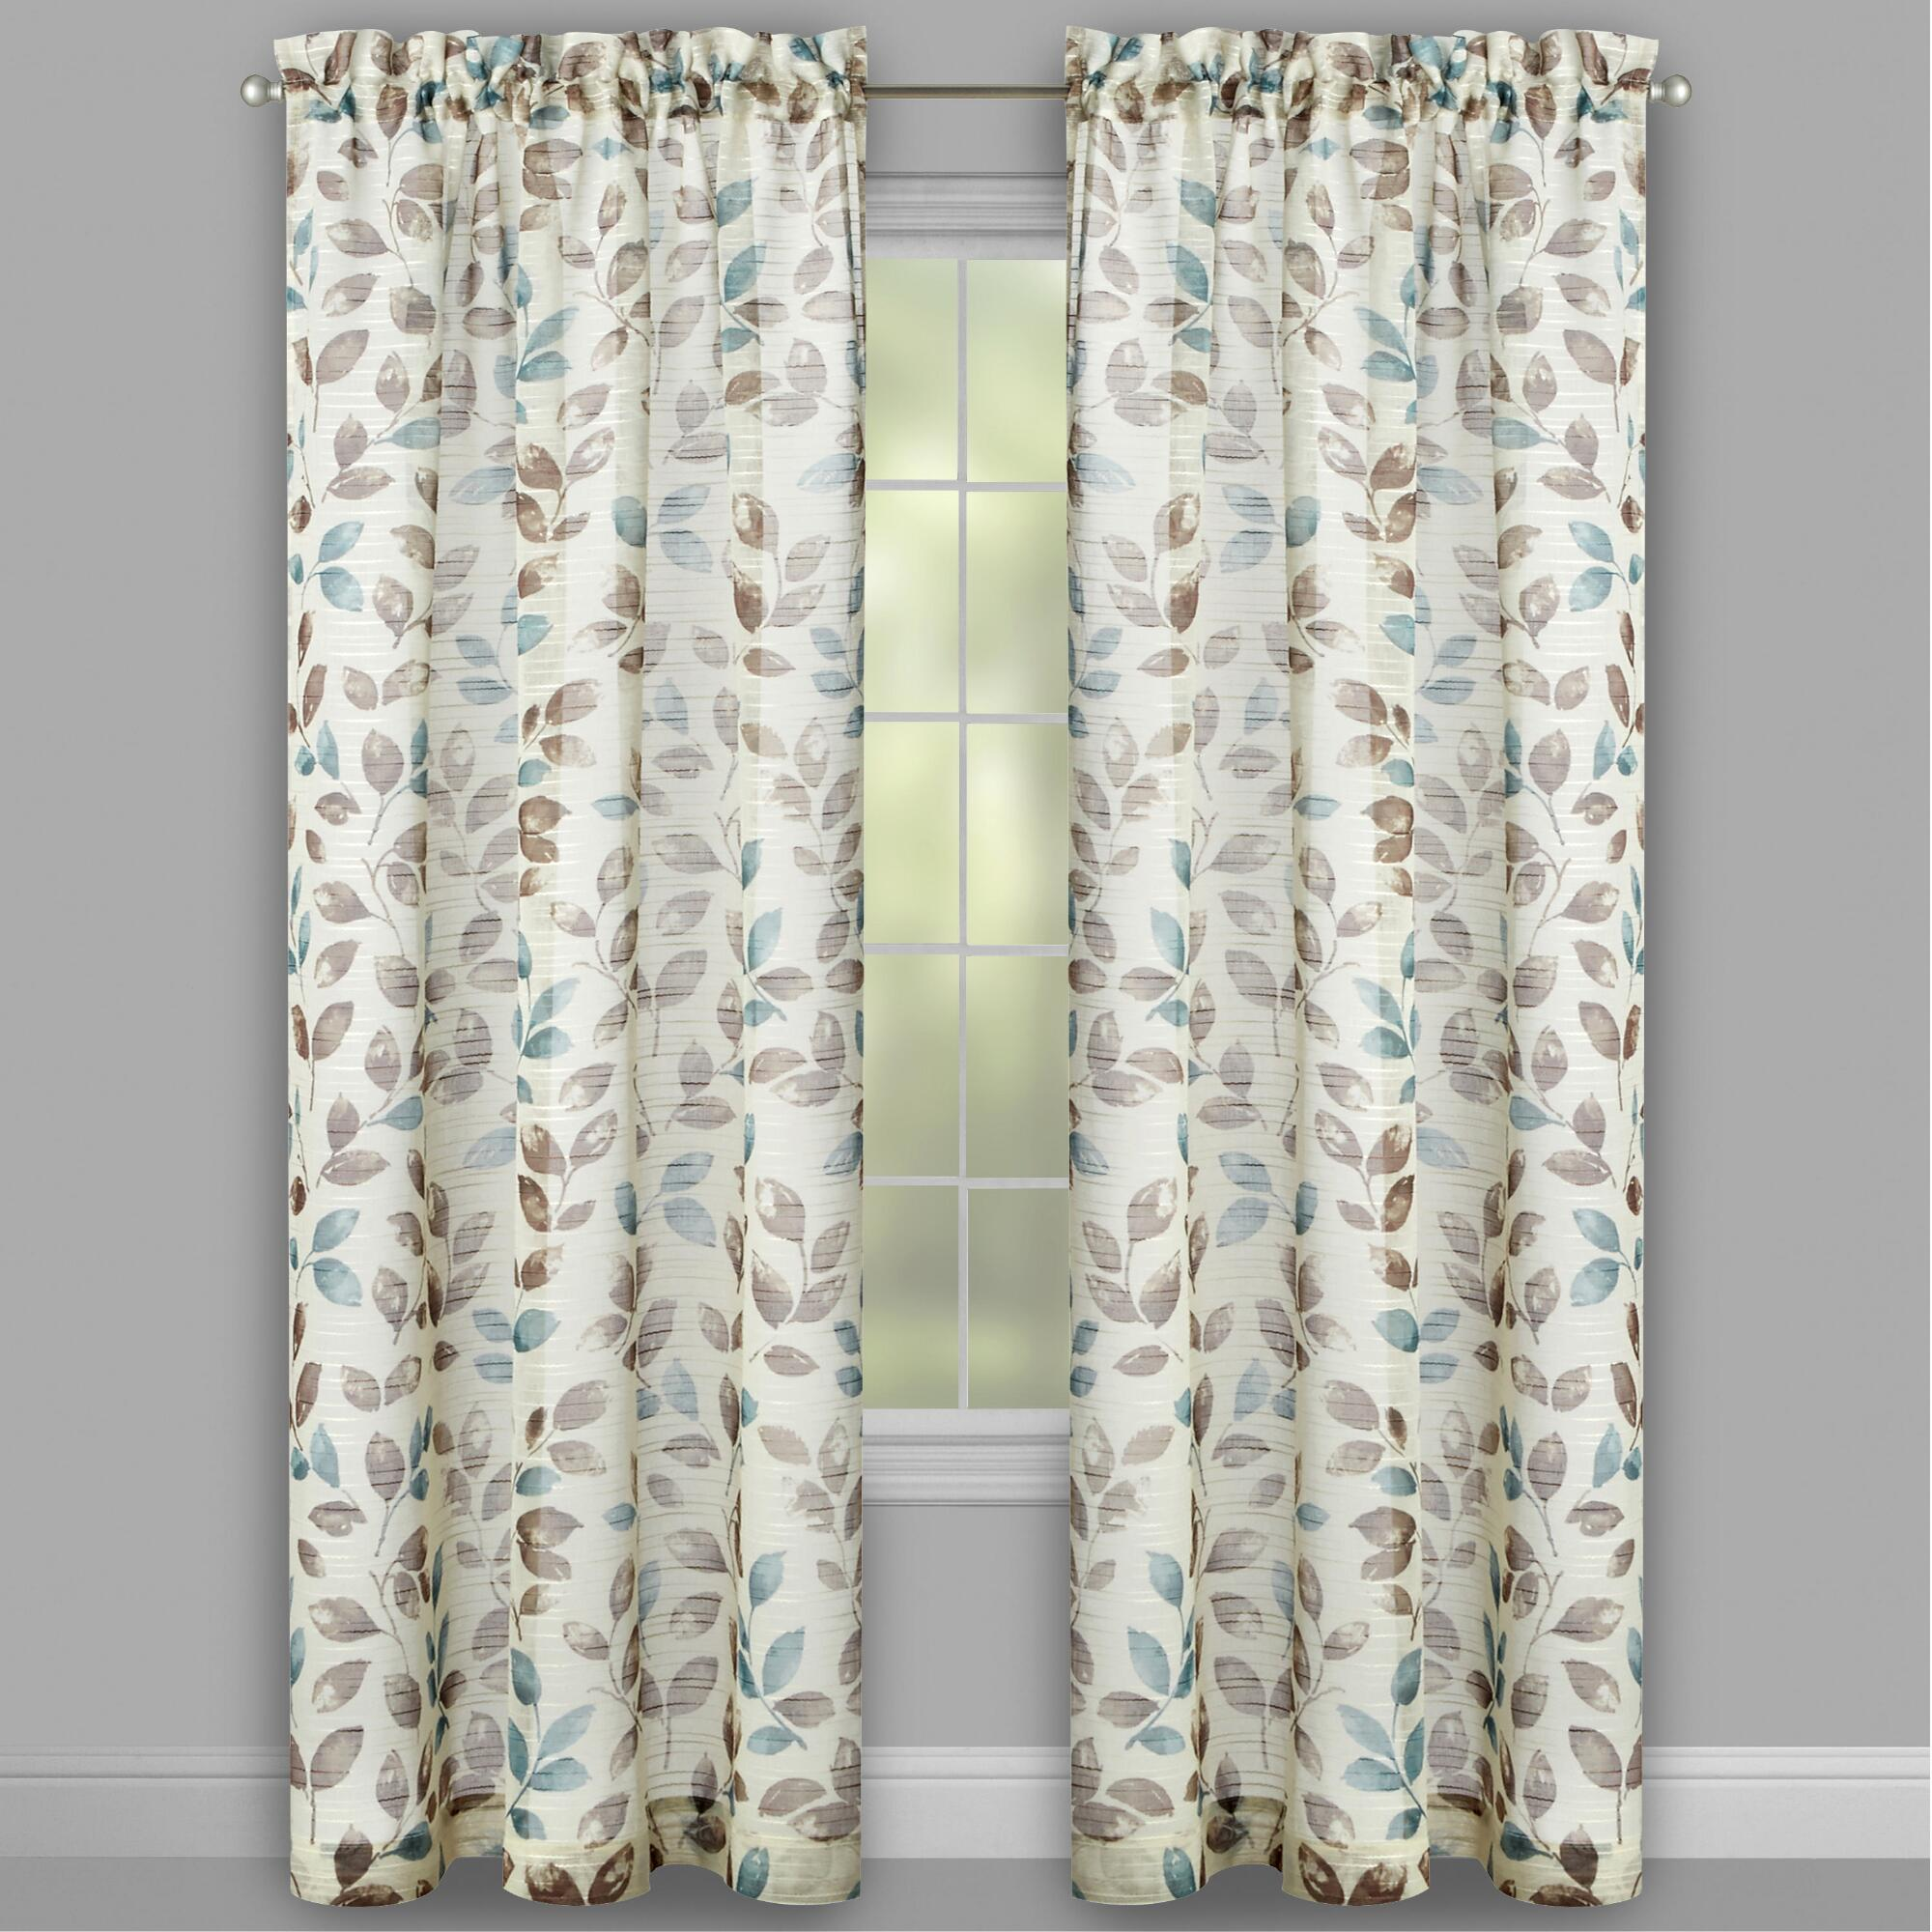 Embroidered Curtains | Peach Floral Curtains | Chartreuse Velvet Curtains